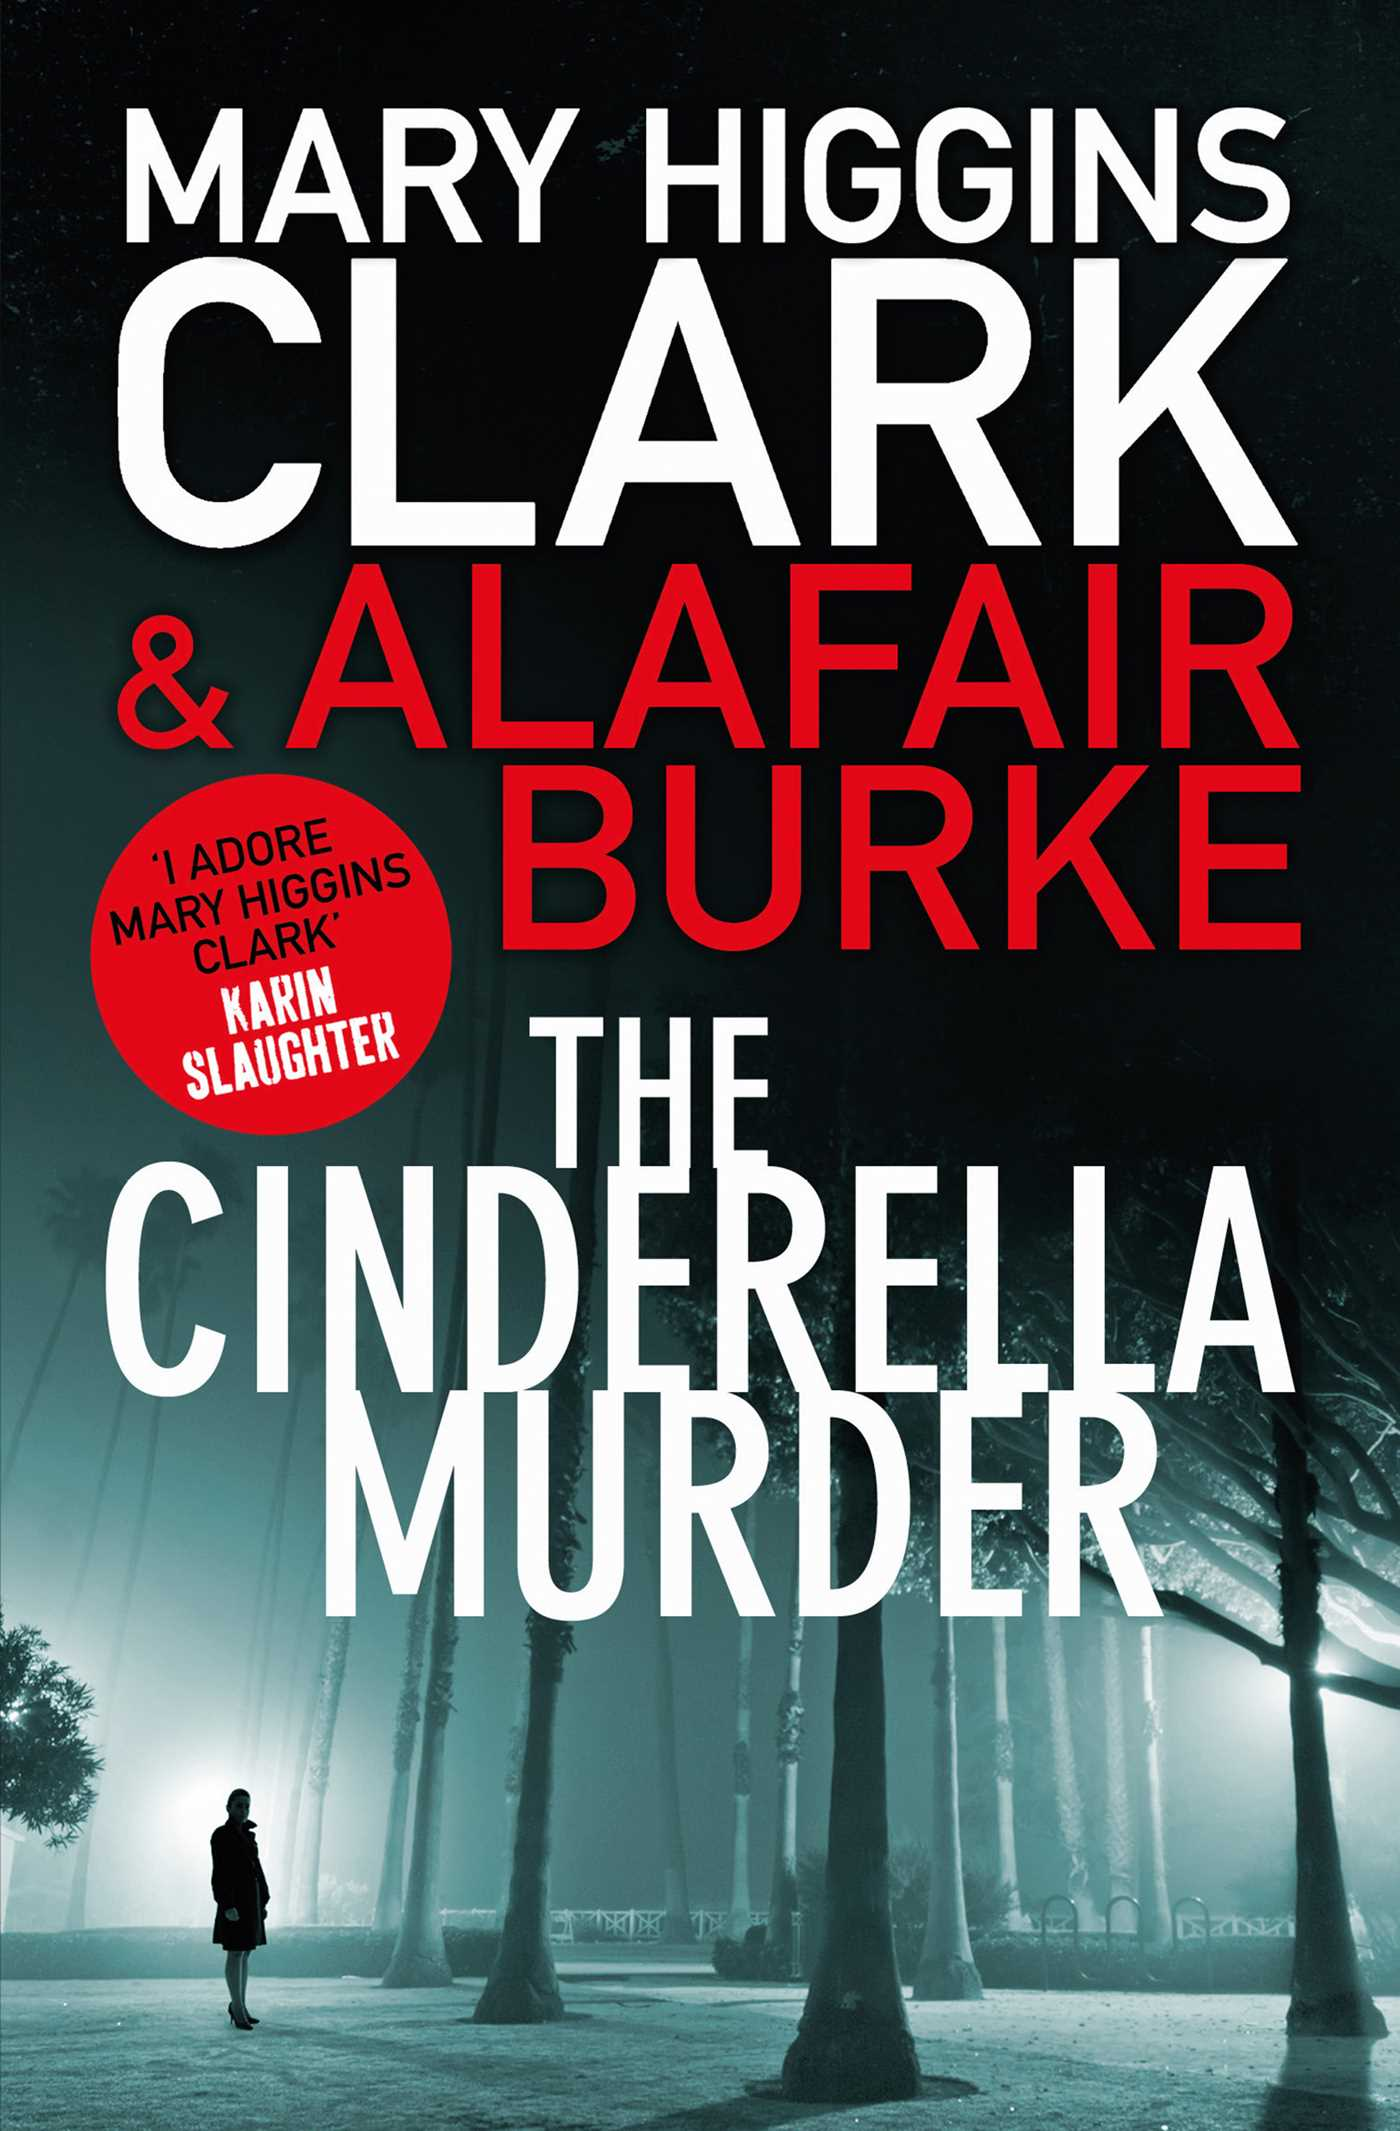 The cinderella murder 9781471138492 hr